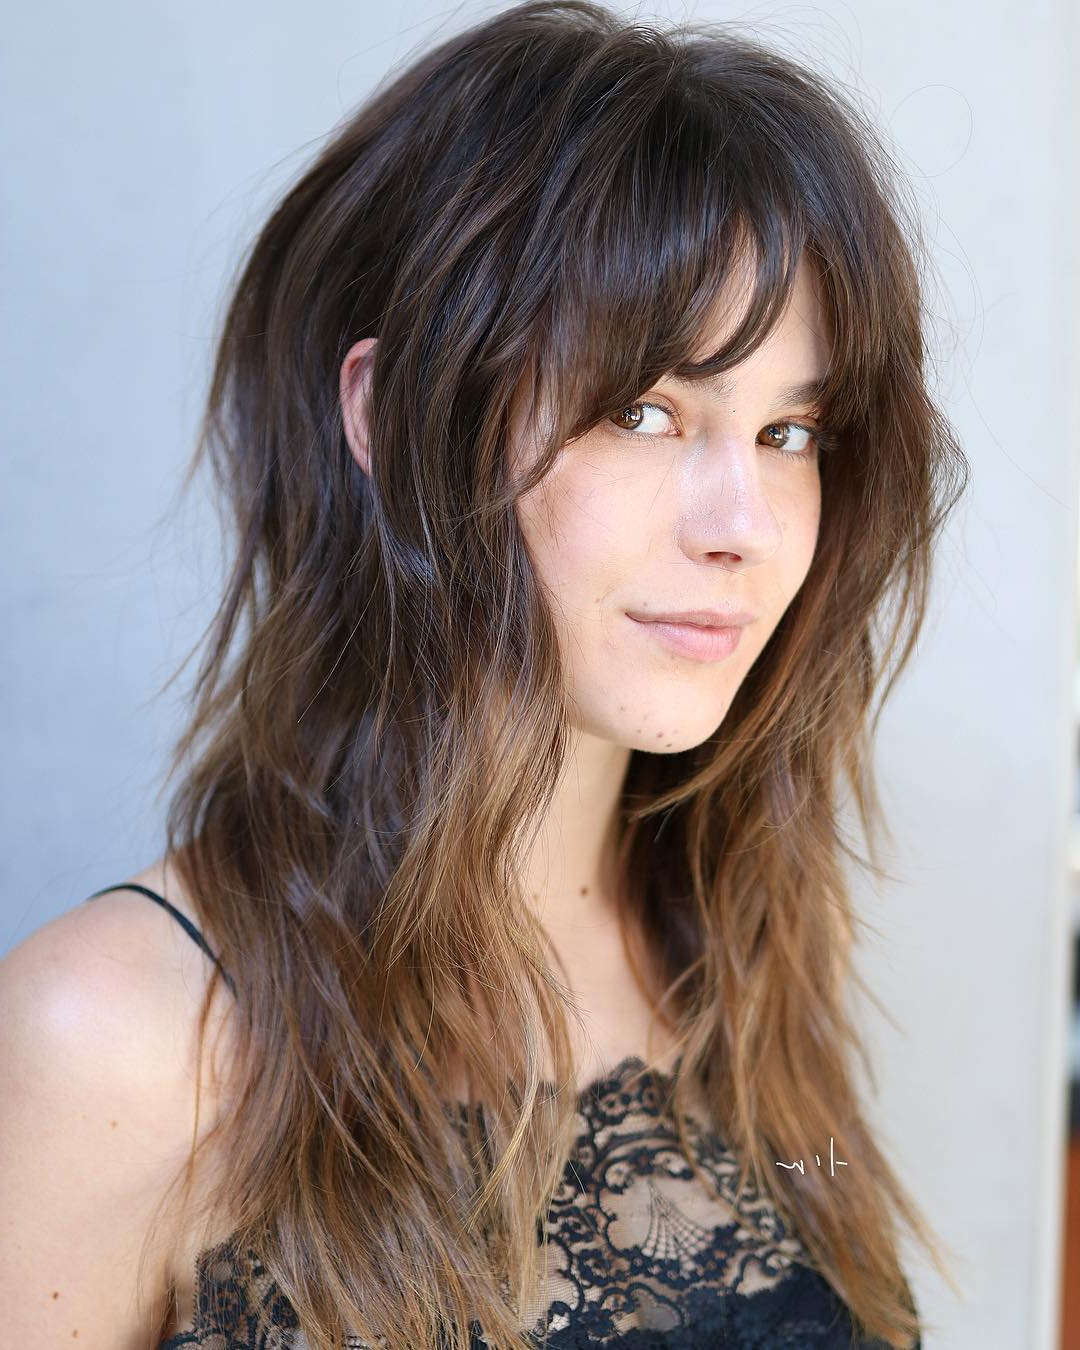 40 Modern Shag Haircuts For Women To Make A Splash Within Favorite Frizzy Choppy Long Shag Hairstyles (View 5 of 20)